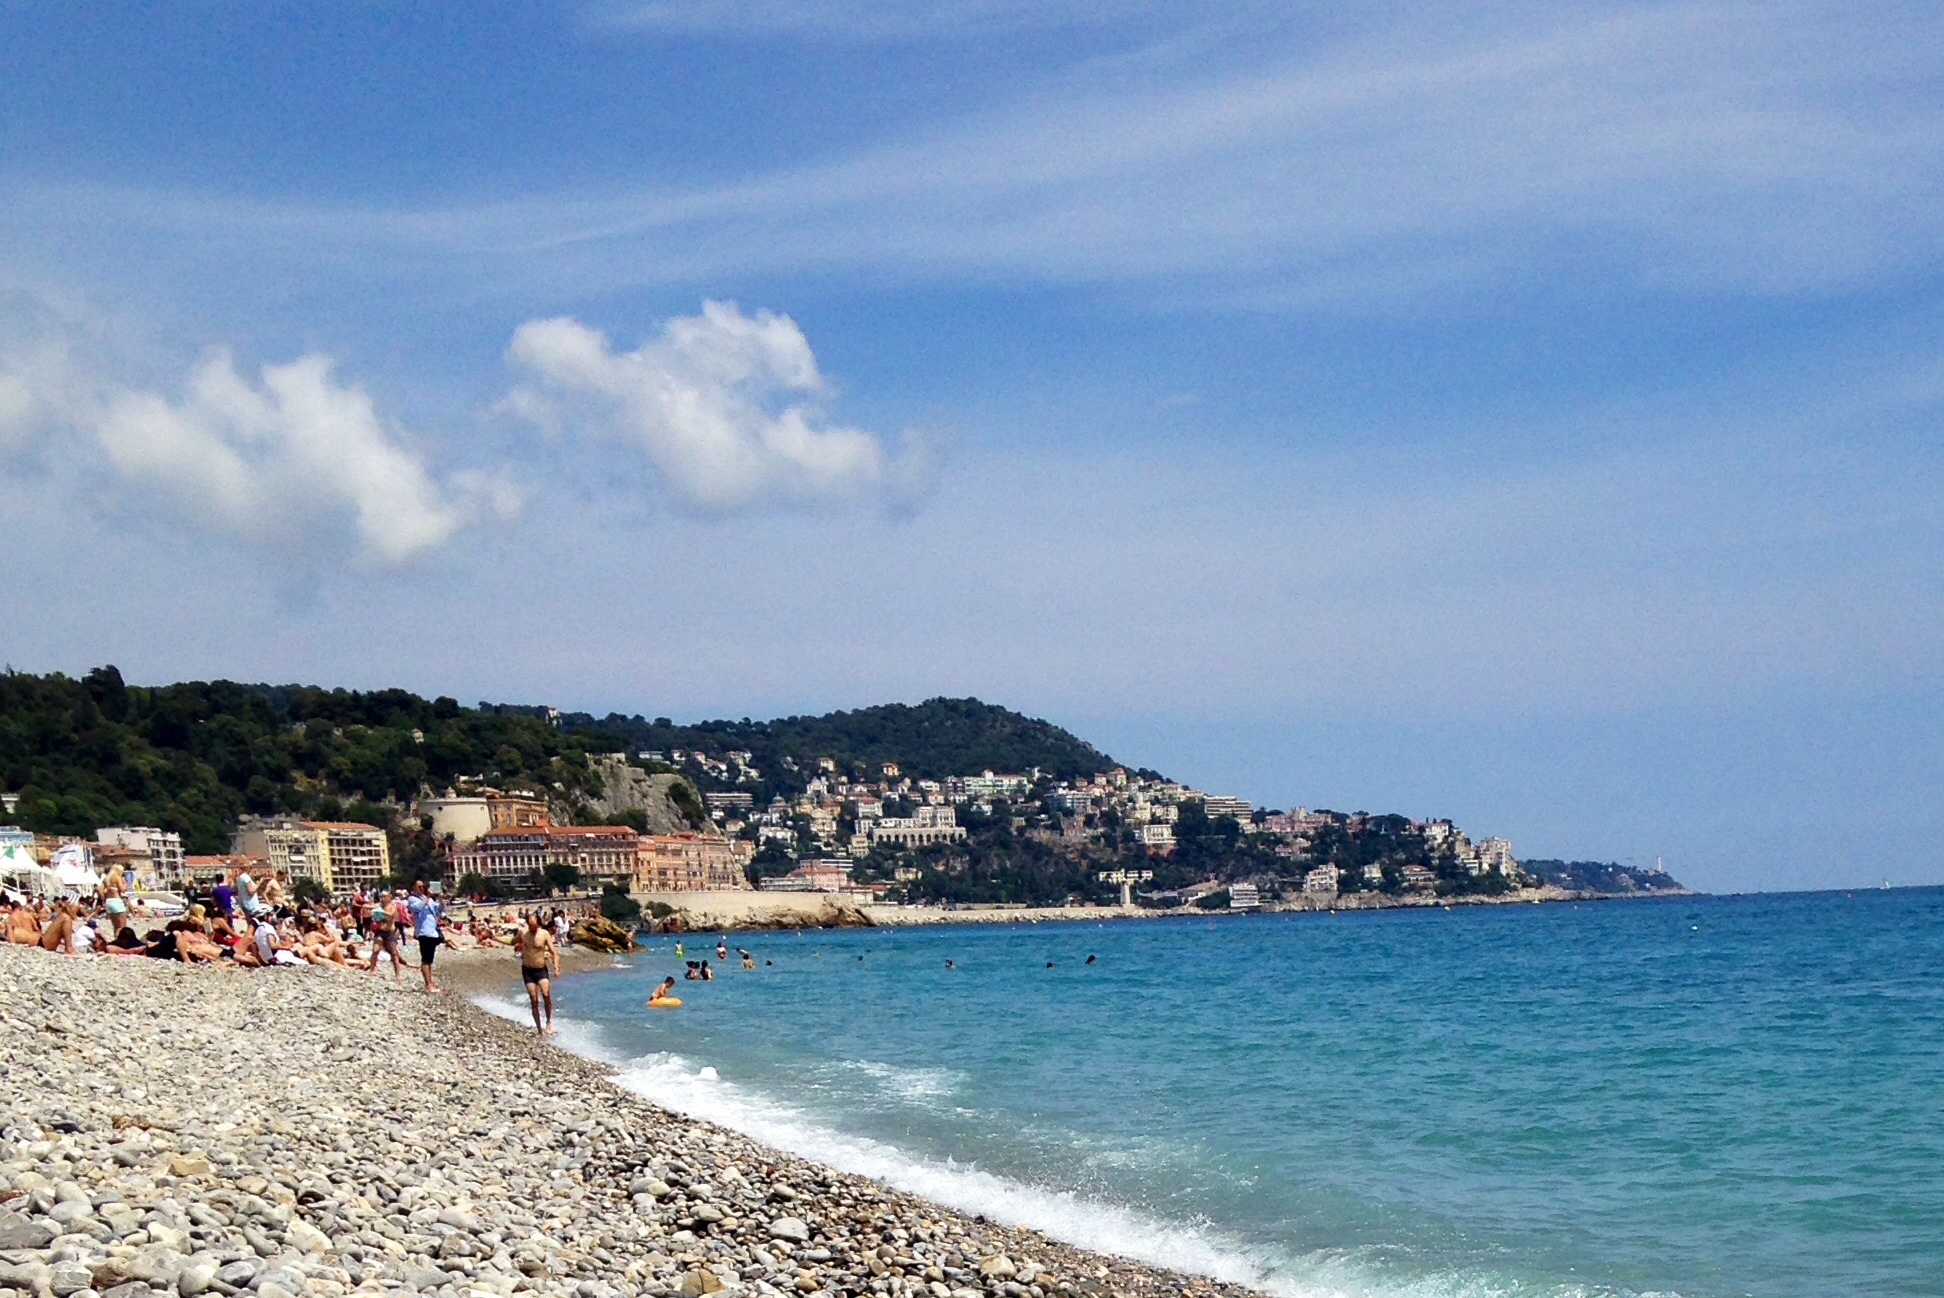 A view of Côte d'Azur